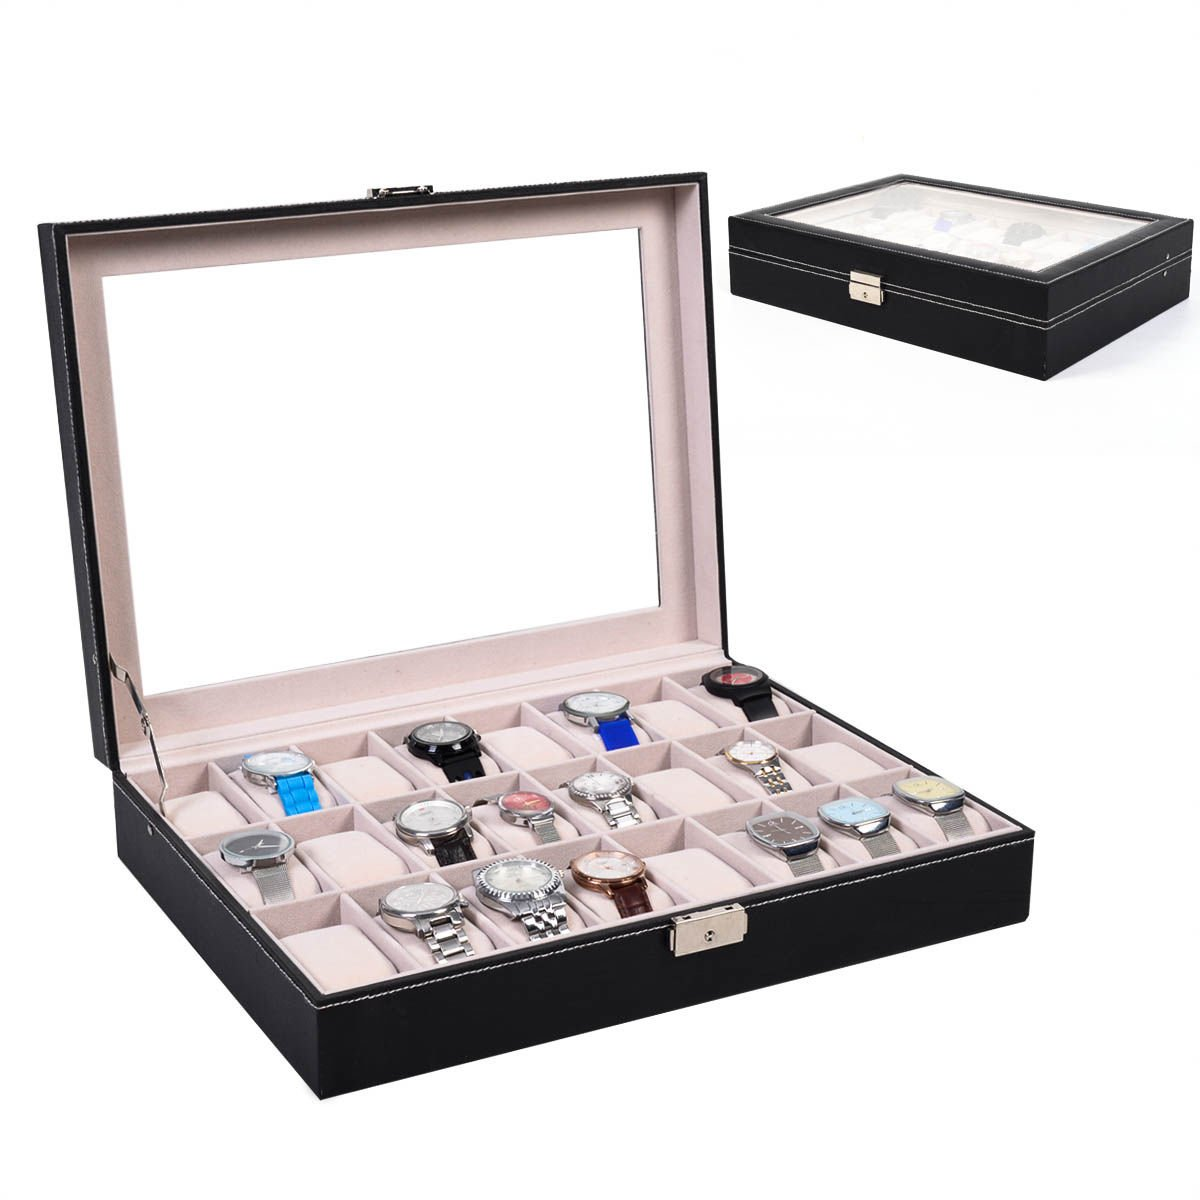 Amazoncom Super buy 24 Slot Leather Watch Box Display Case